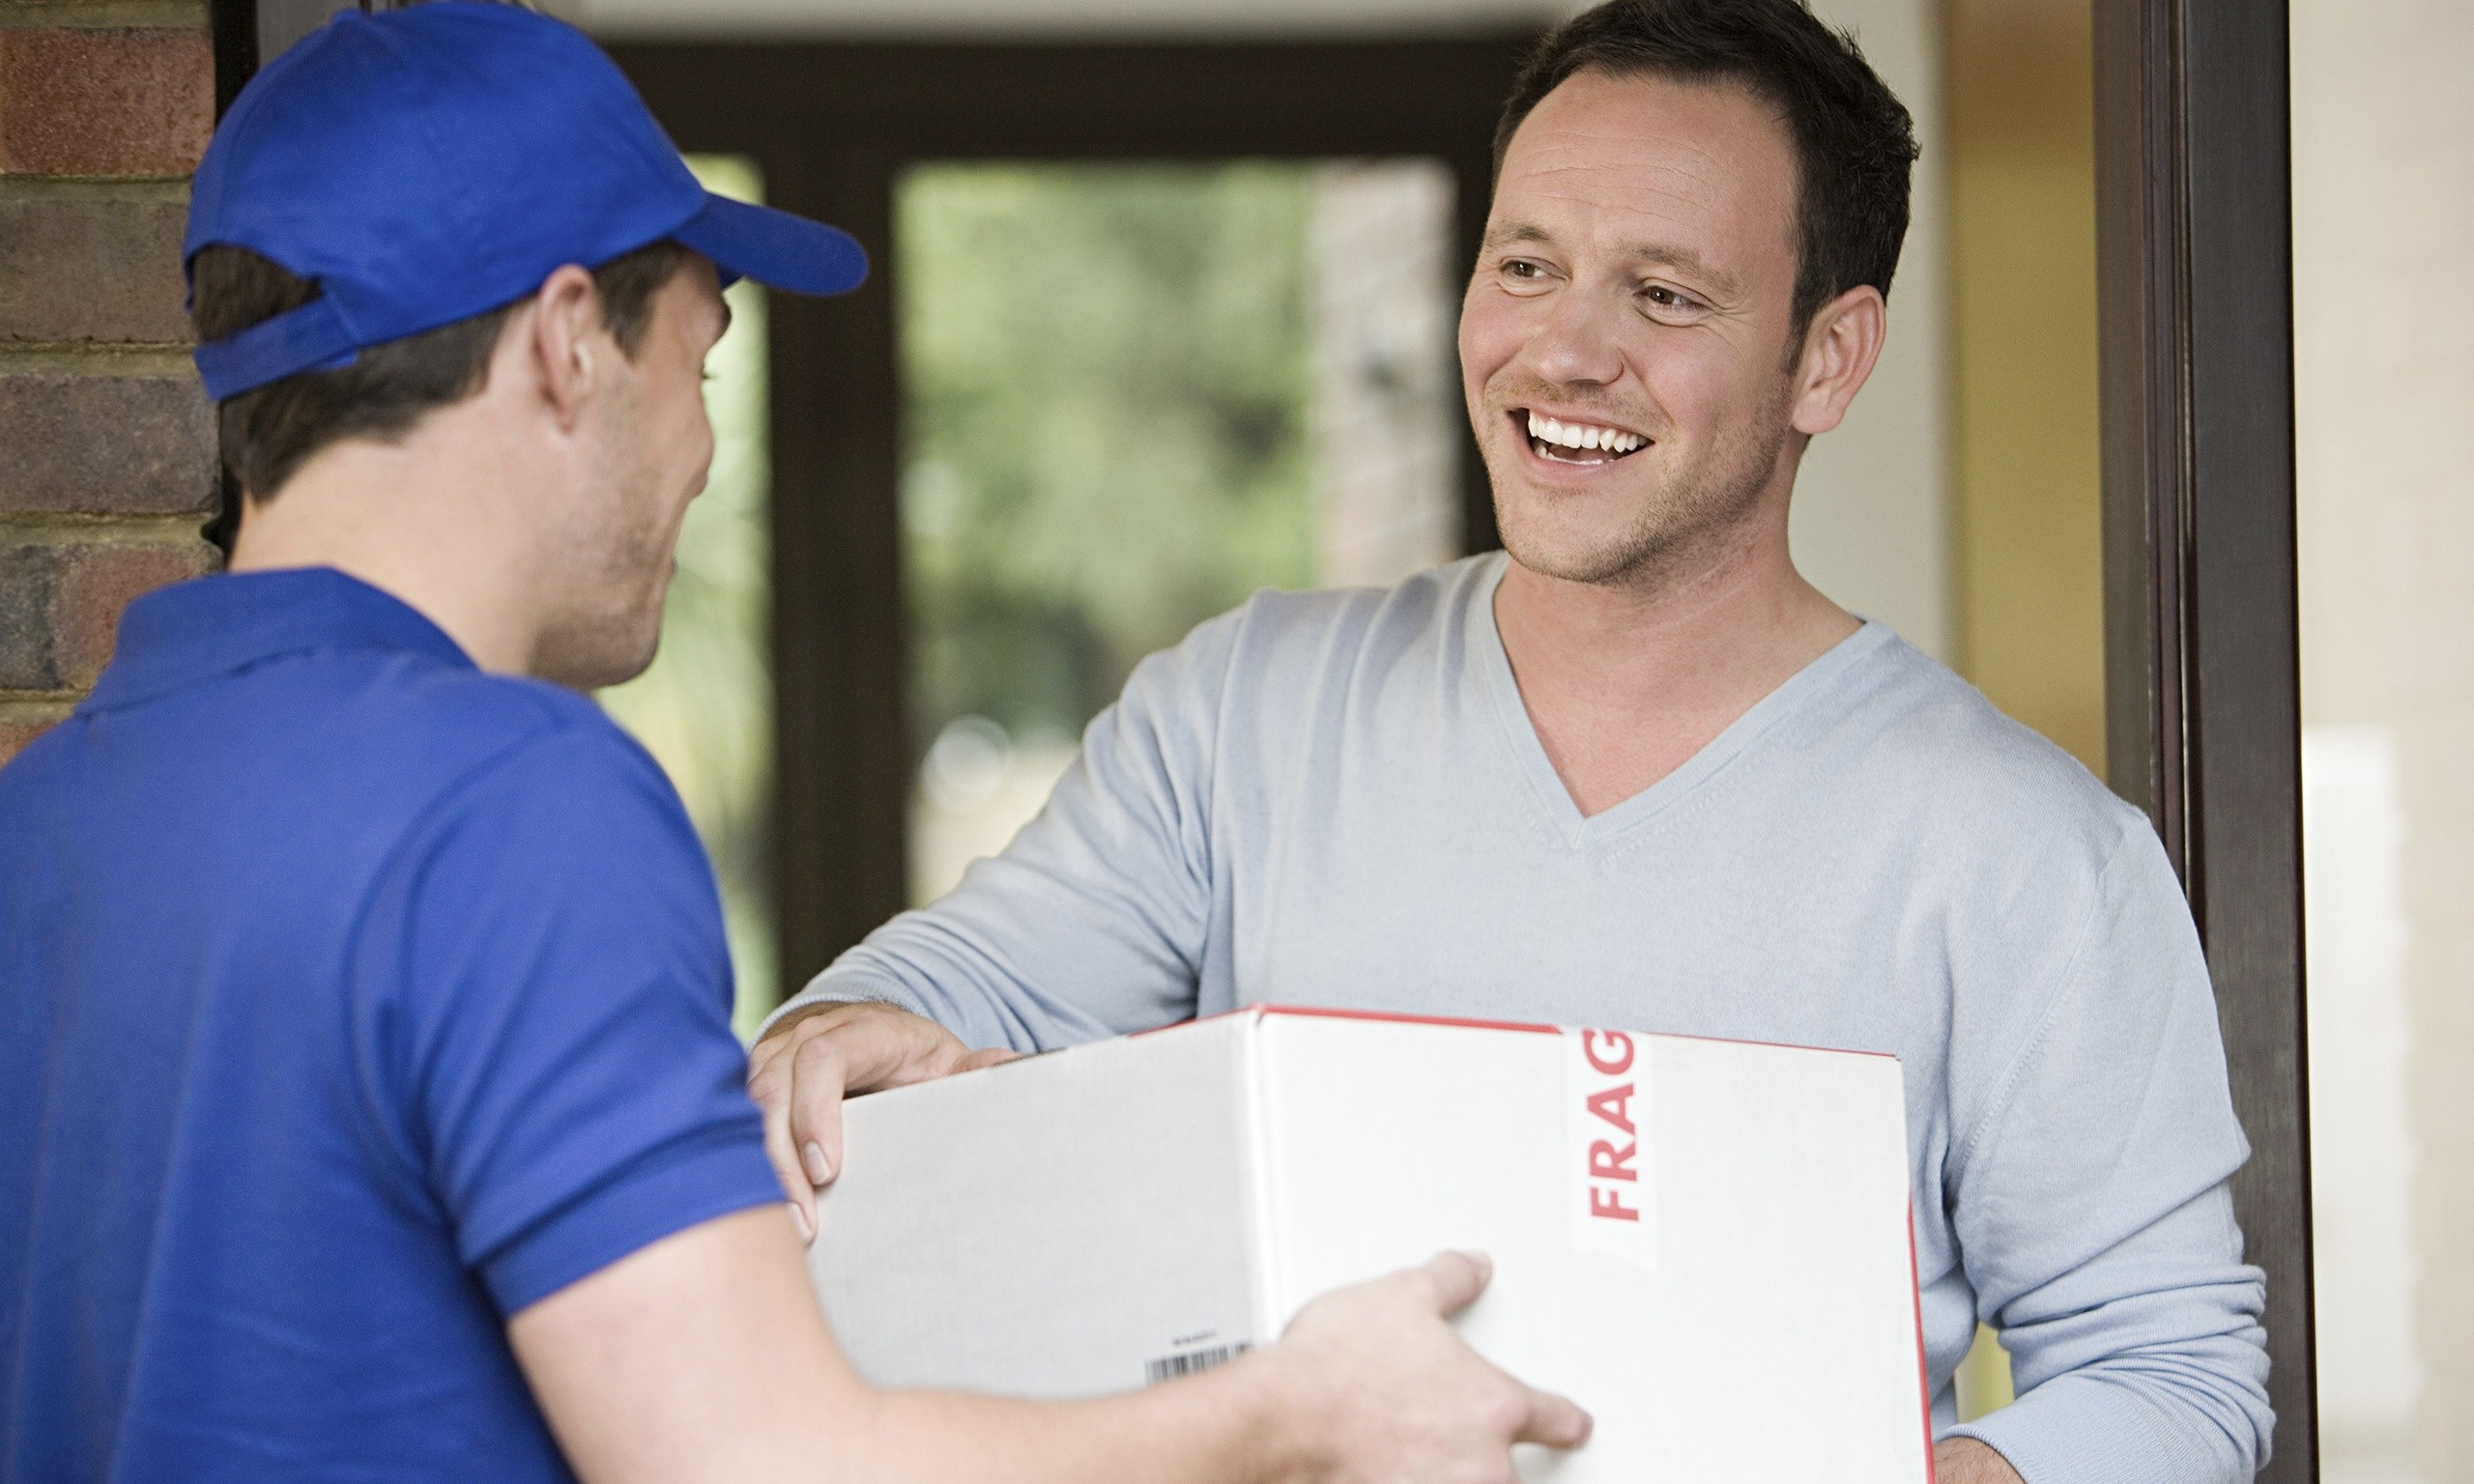 courier service Dropoff solves your business' same-day delivery challenges so you can better serve your customers we're not your typical courier.